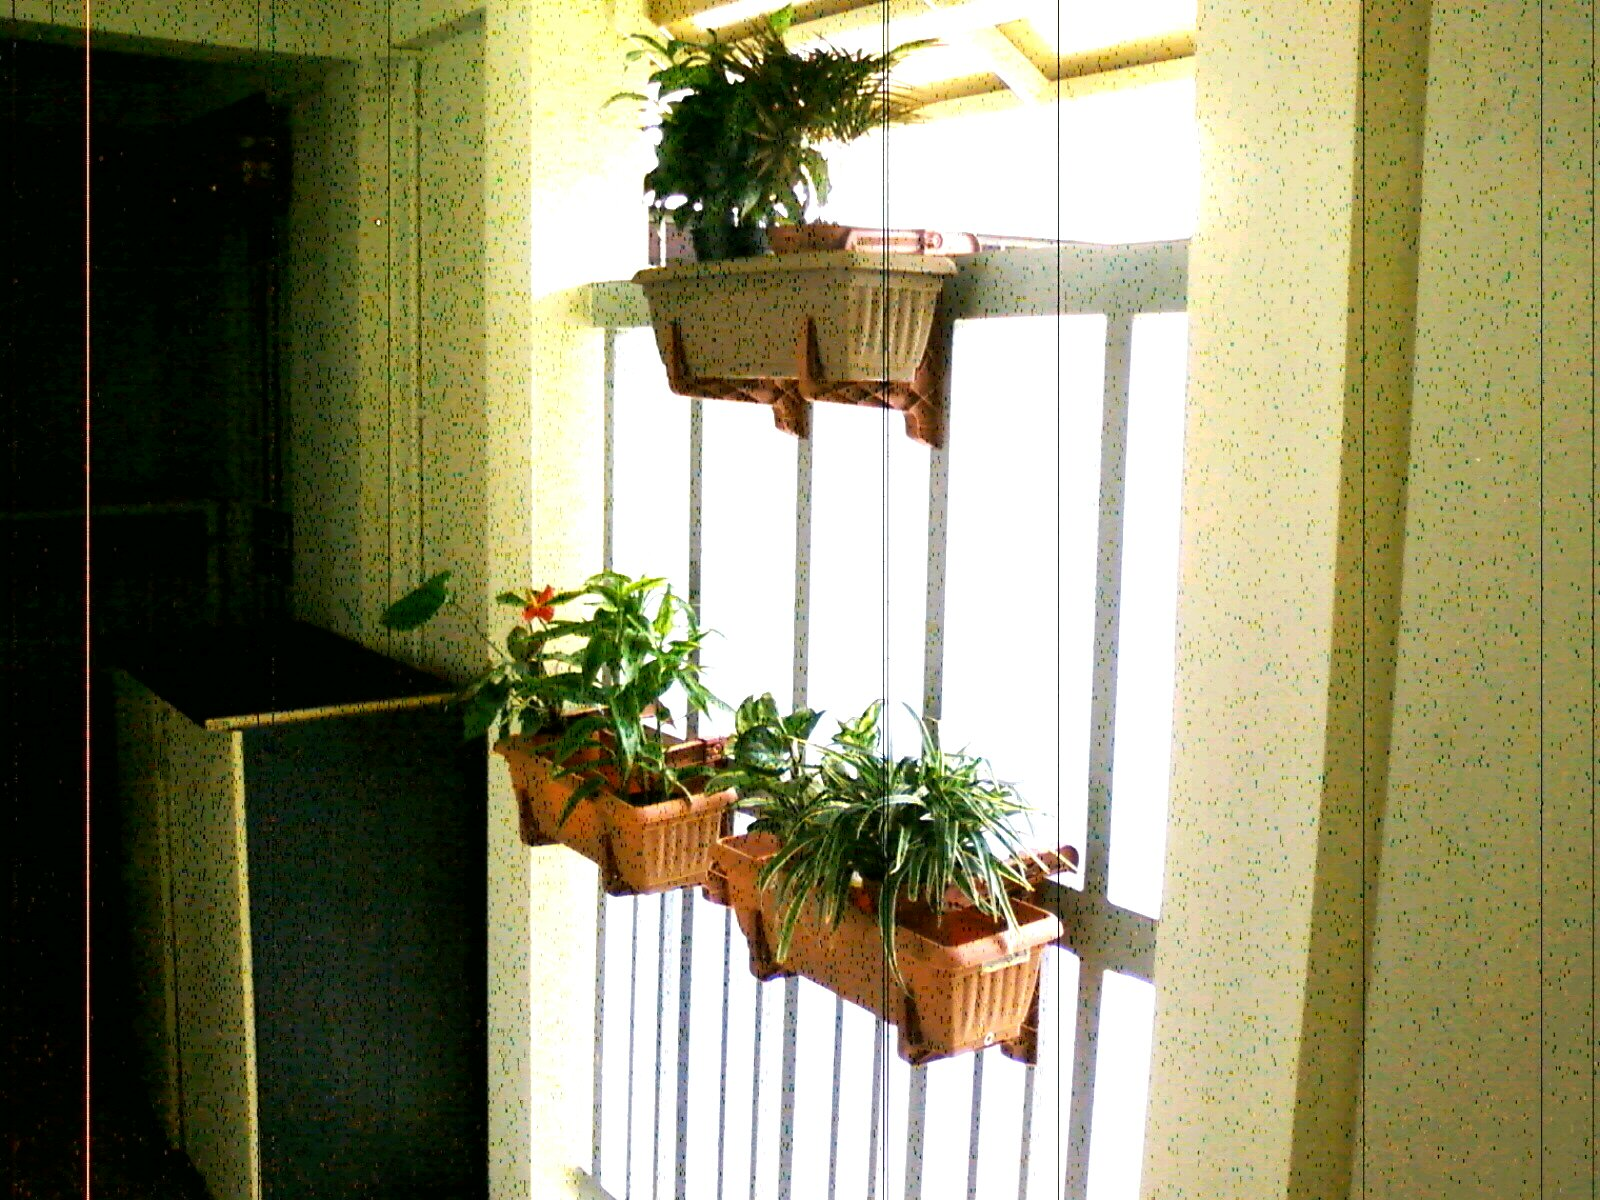 Pretty gardens deck rail planter makes great small space - Planters to hang on railing ...